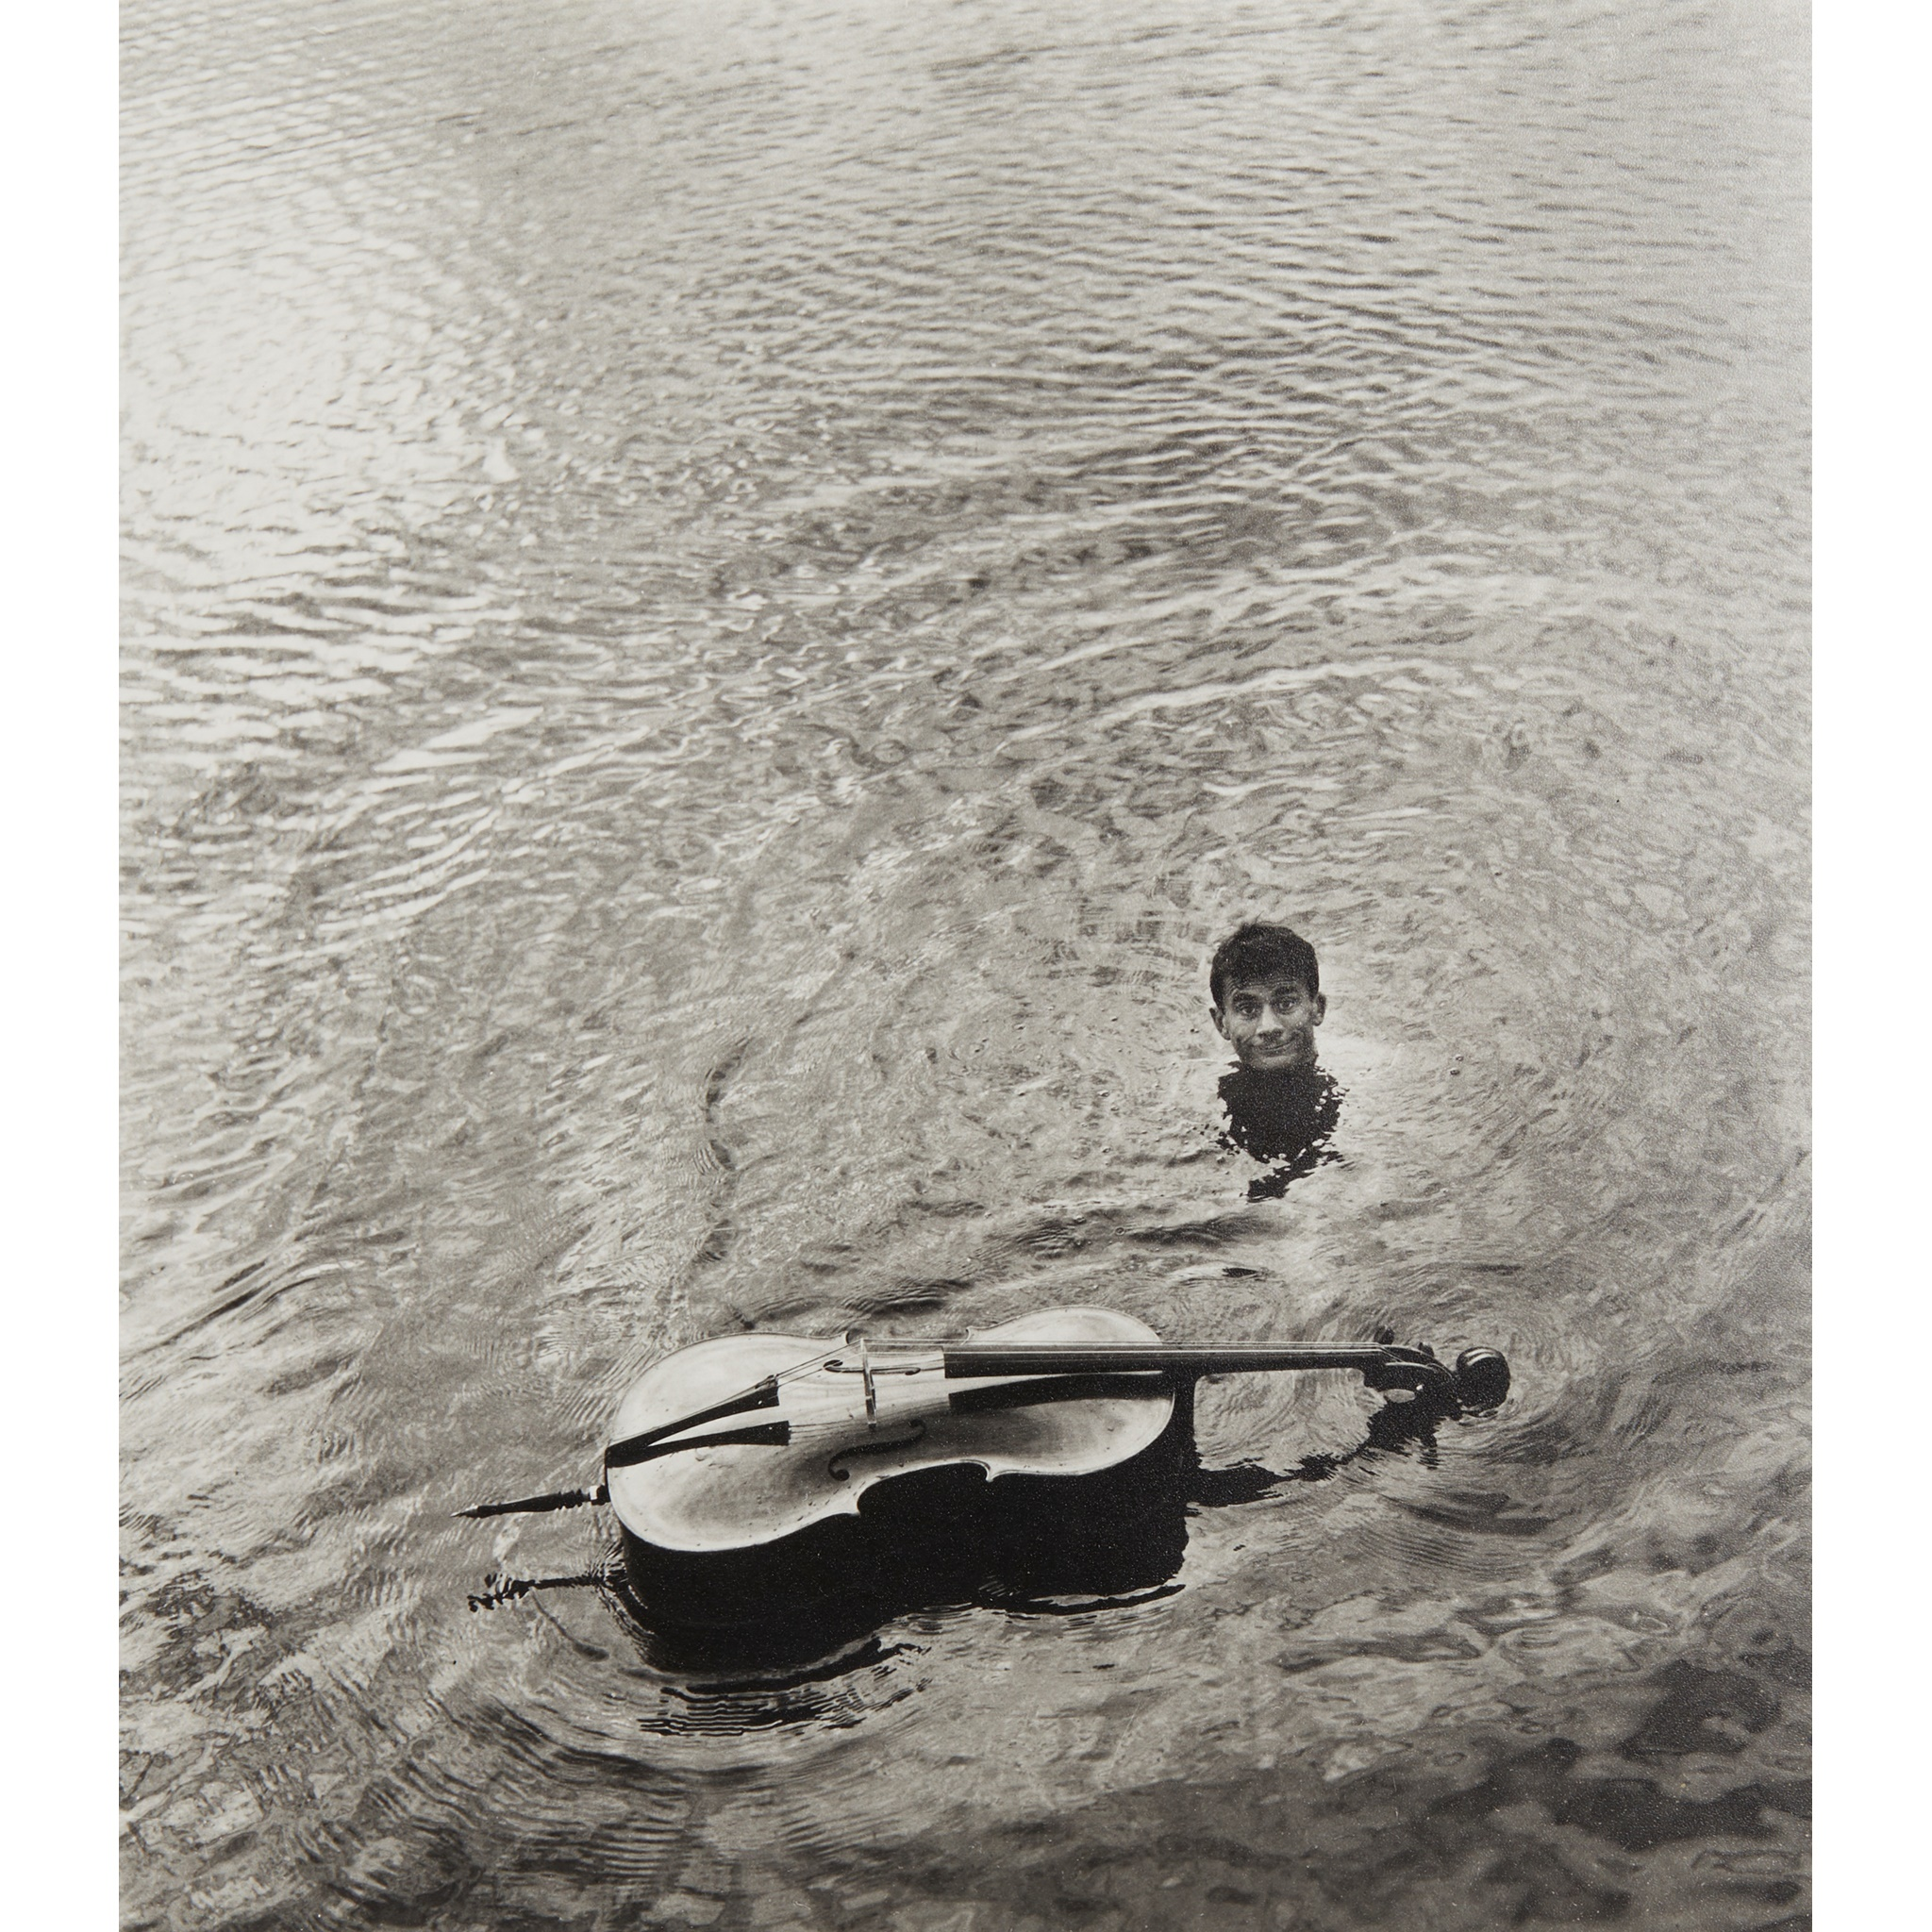 § ROBERT DOISNEAU (FRENCH 1912-1994) SABORDAGE - MAURICE BAQUET WITH HIS CELLO - 1957